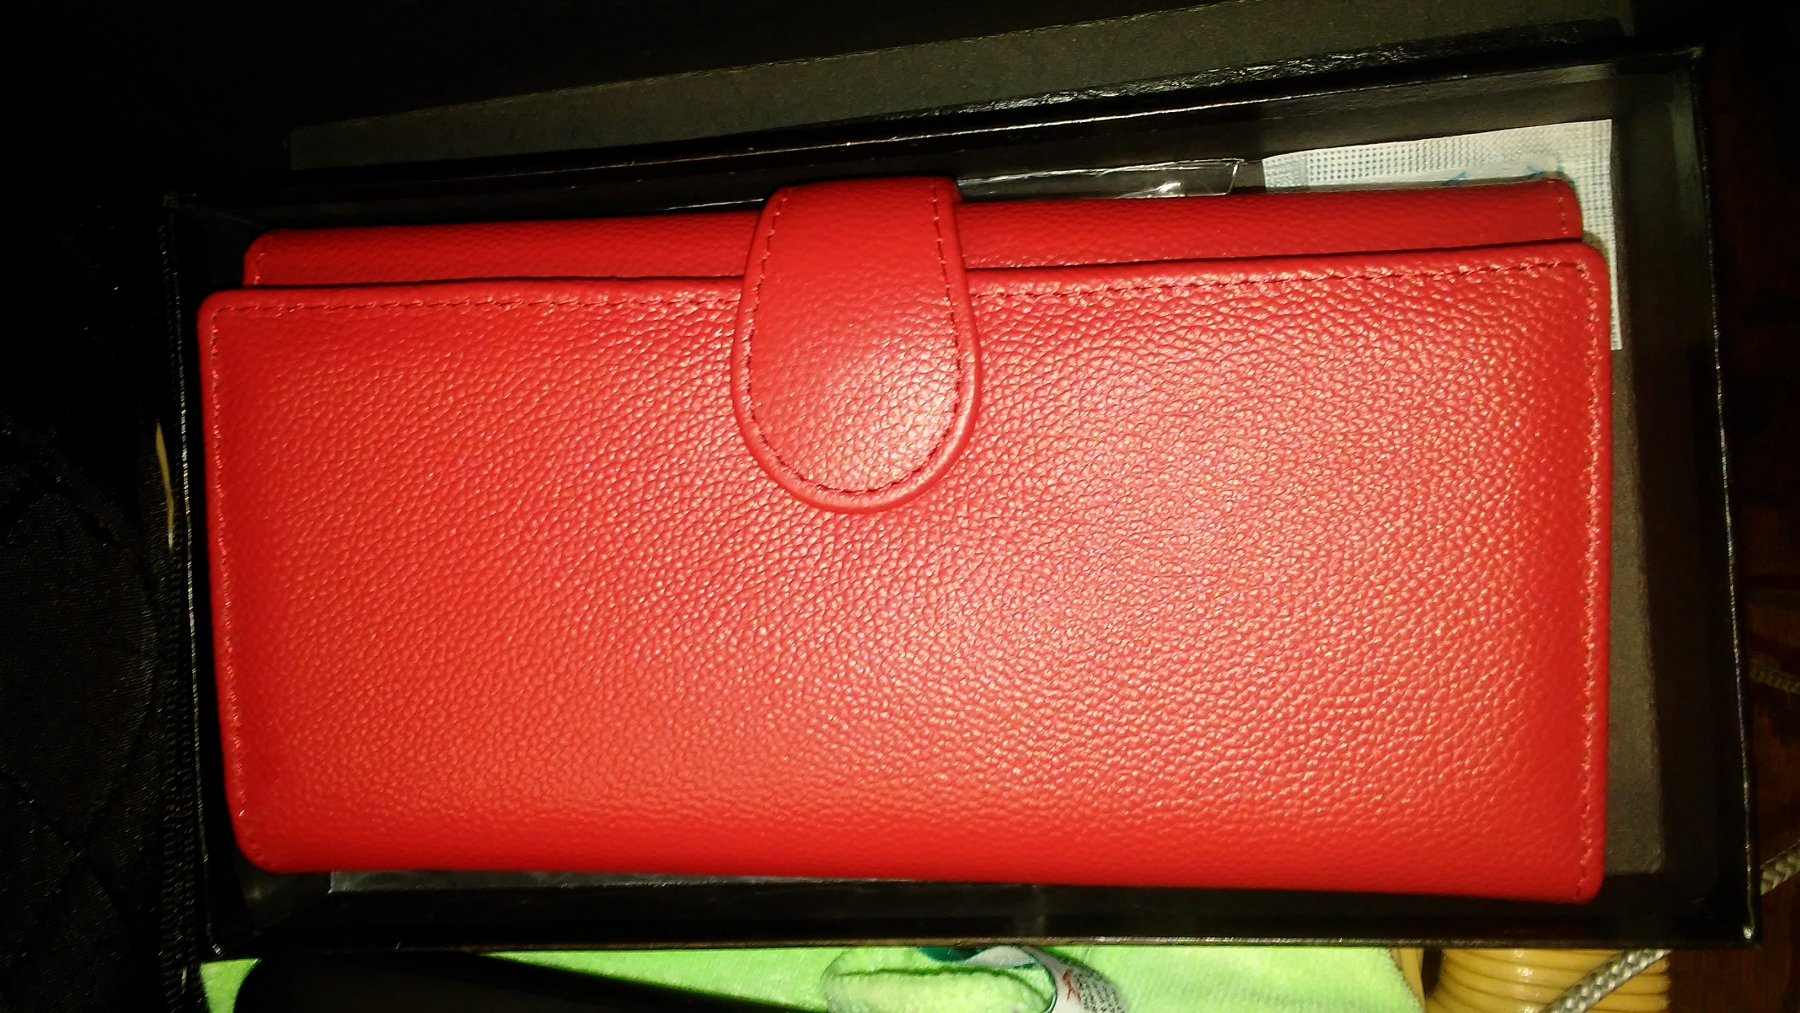 Very nice women's long trifold clutch purse